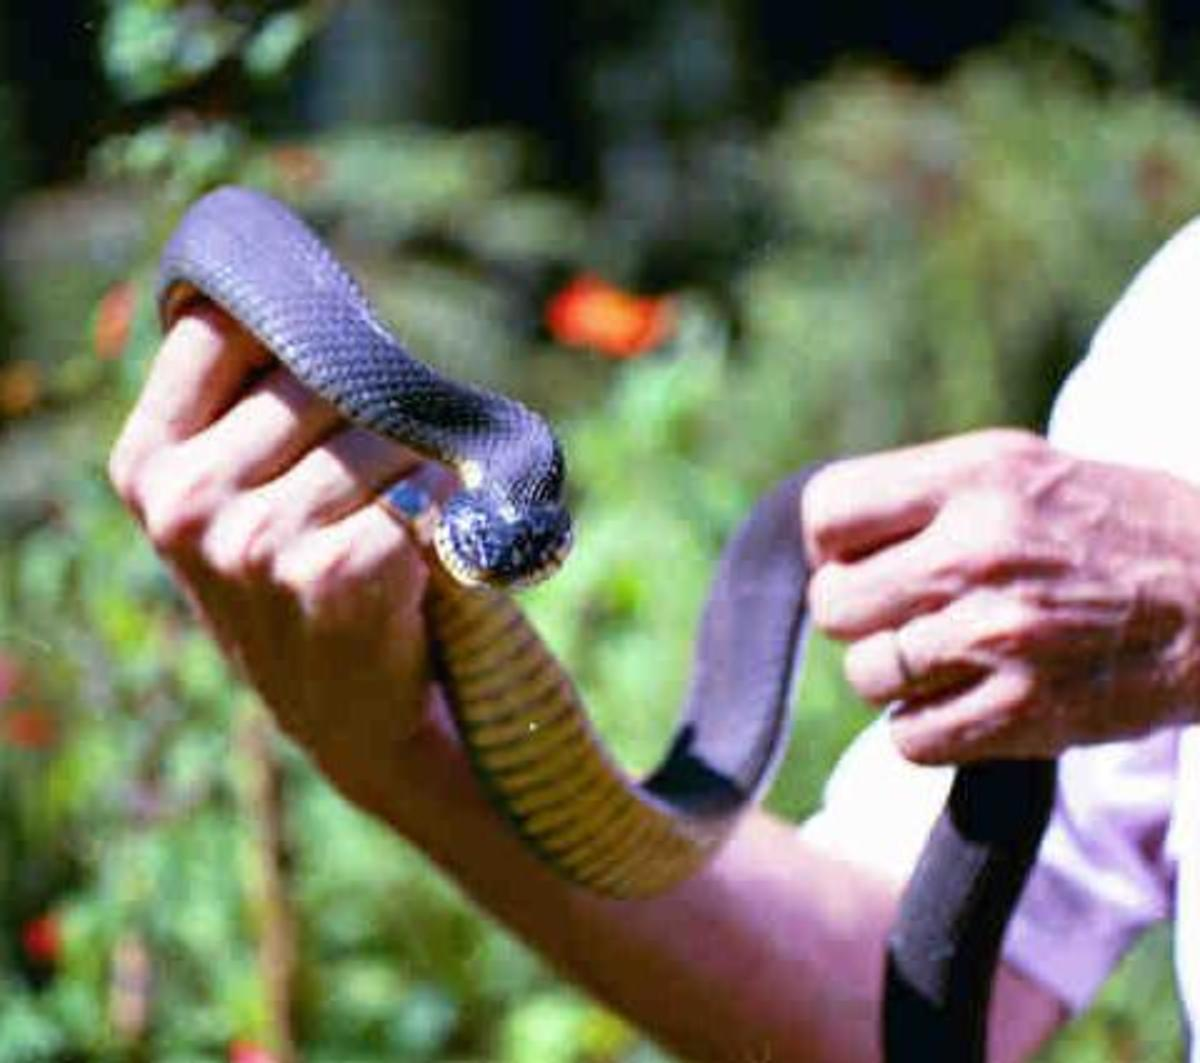 These snakes live in water, but are often seen on land.